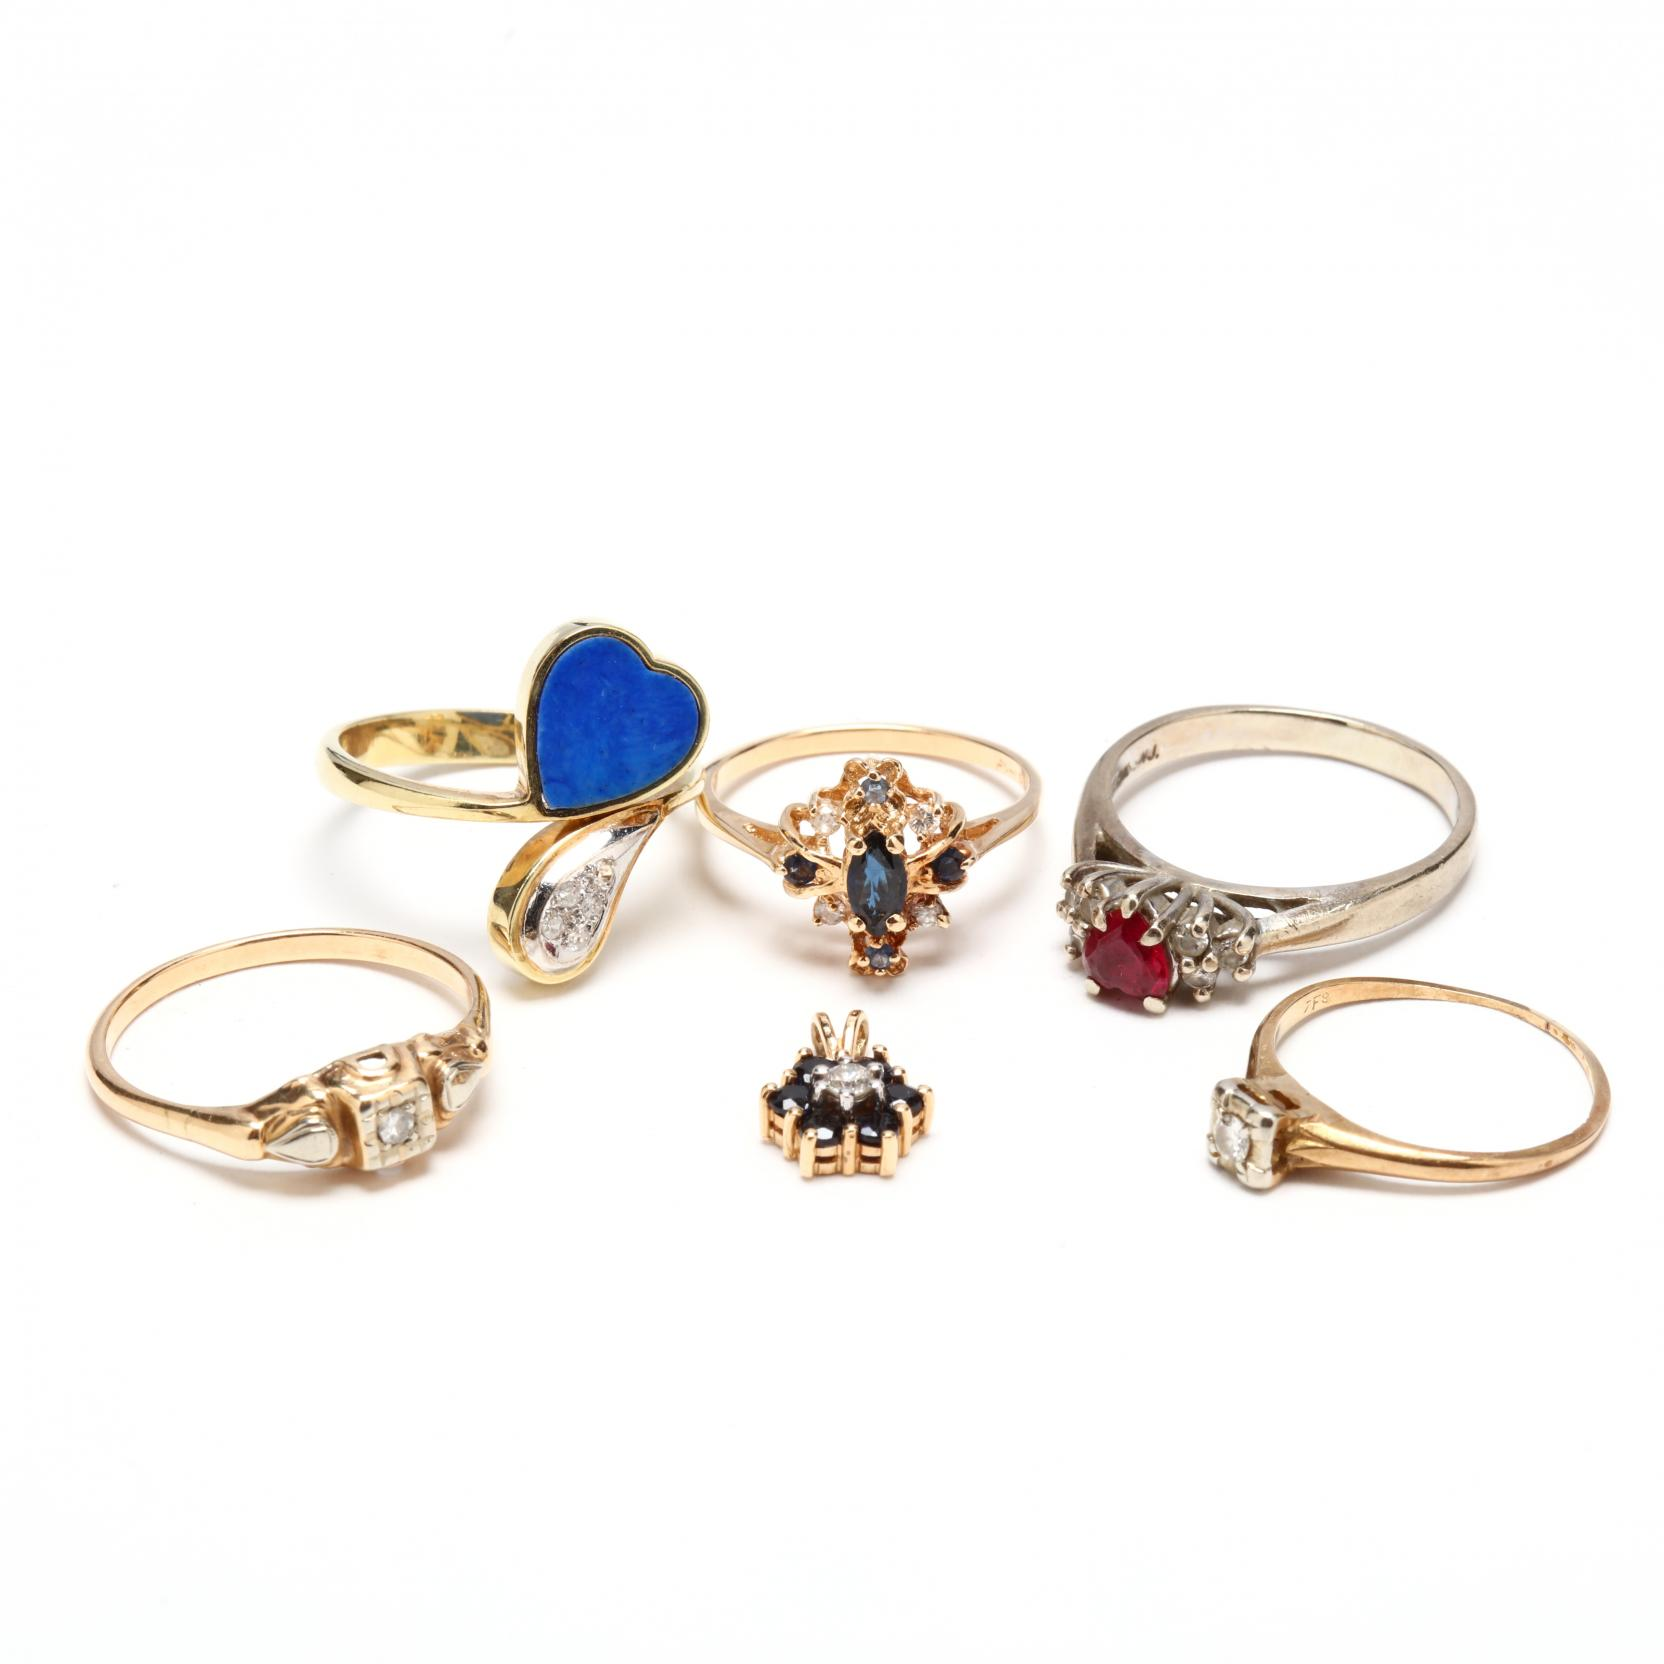 group-of-14kt-gold-and-gem-set-jewelry